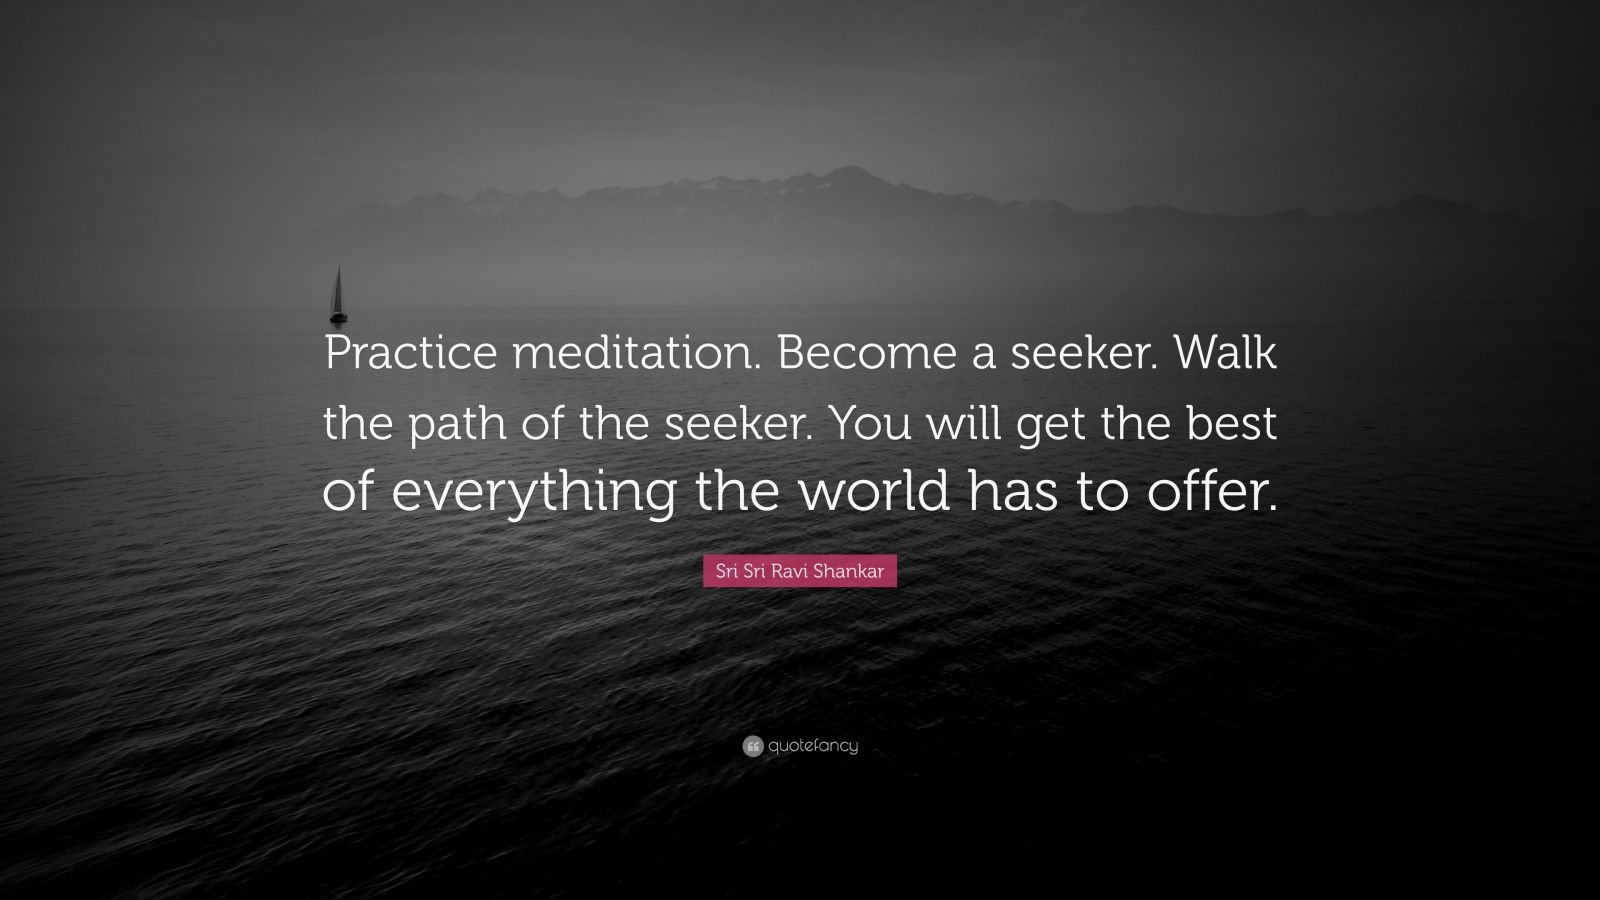 """Sri Sri Ravi Shankar Quote: """"Practice meditation. Become a seeker. Walk the path of the seeker. You will get the best of everything the world has to offer."""""""